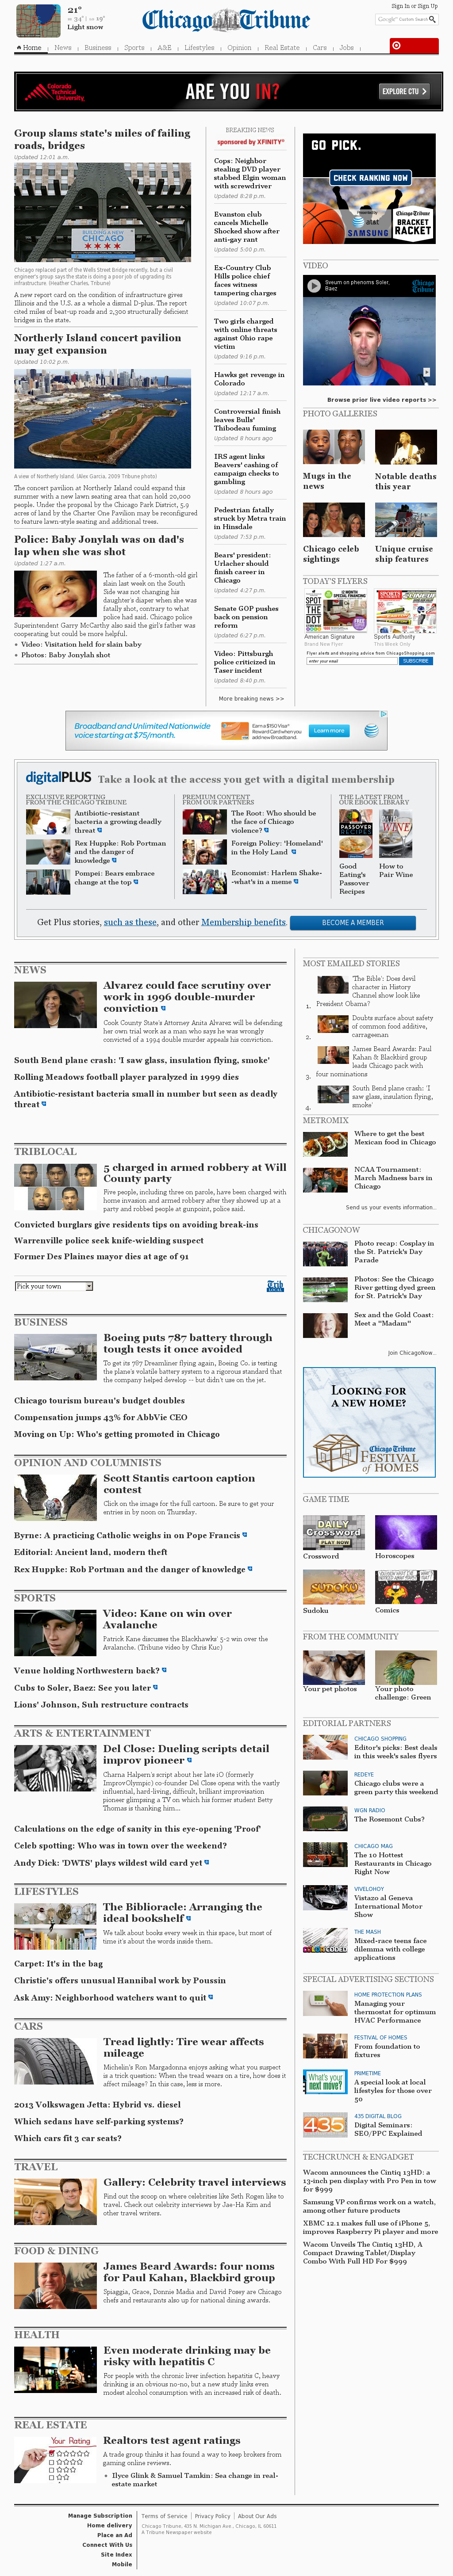 Chicago Tribune at Tuesday March 19, 2013, 8:03 a.m. UTC